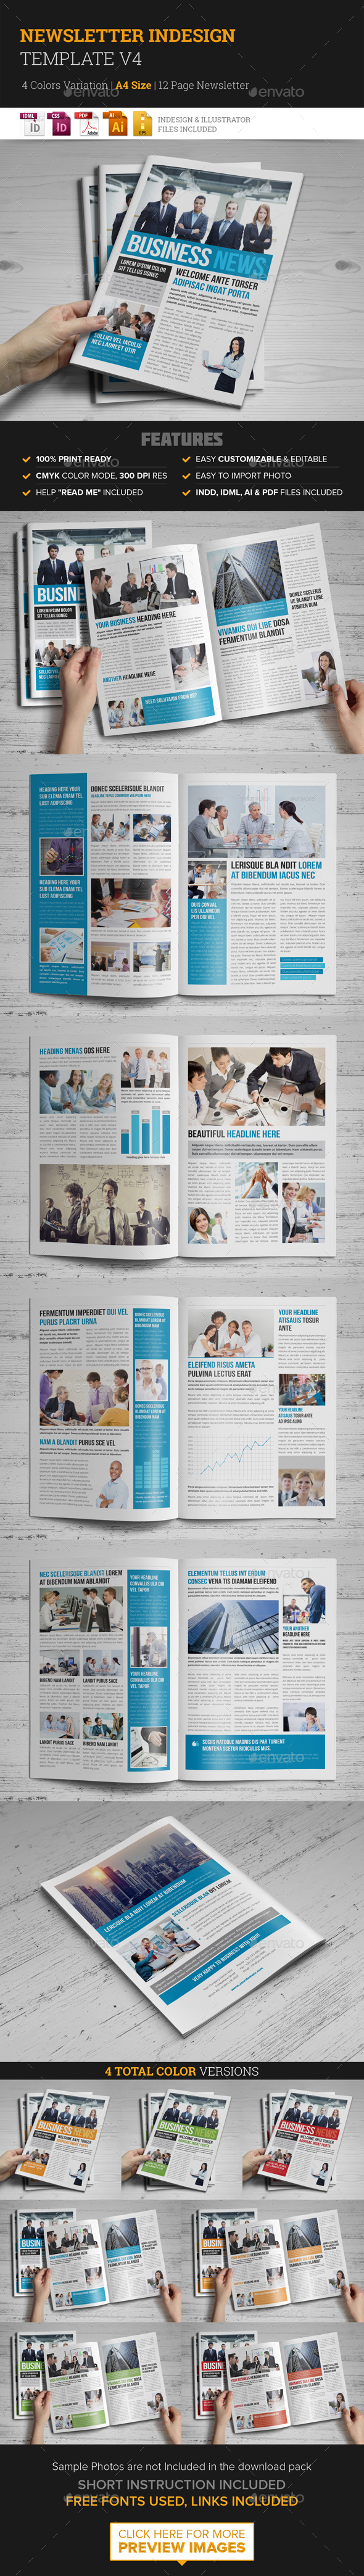 Newsletter Indesign Template v4 - Newsletters Print Templates